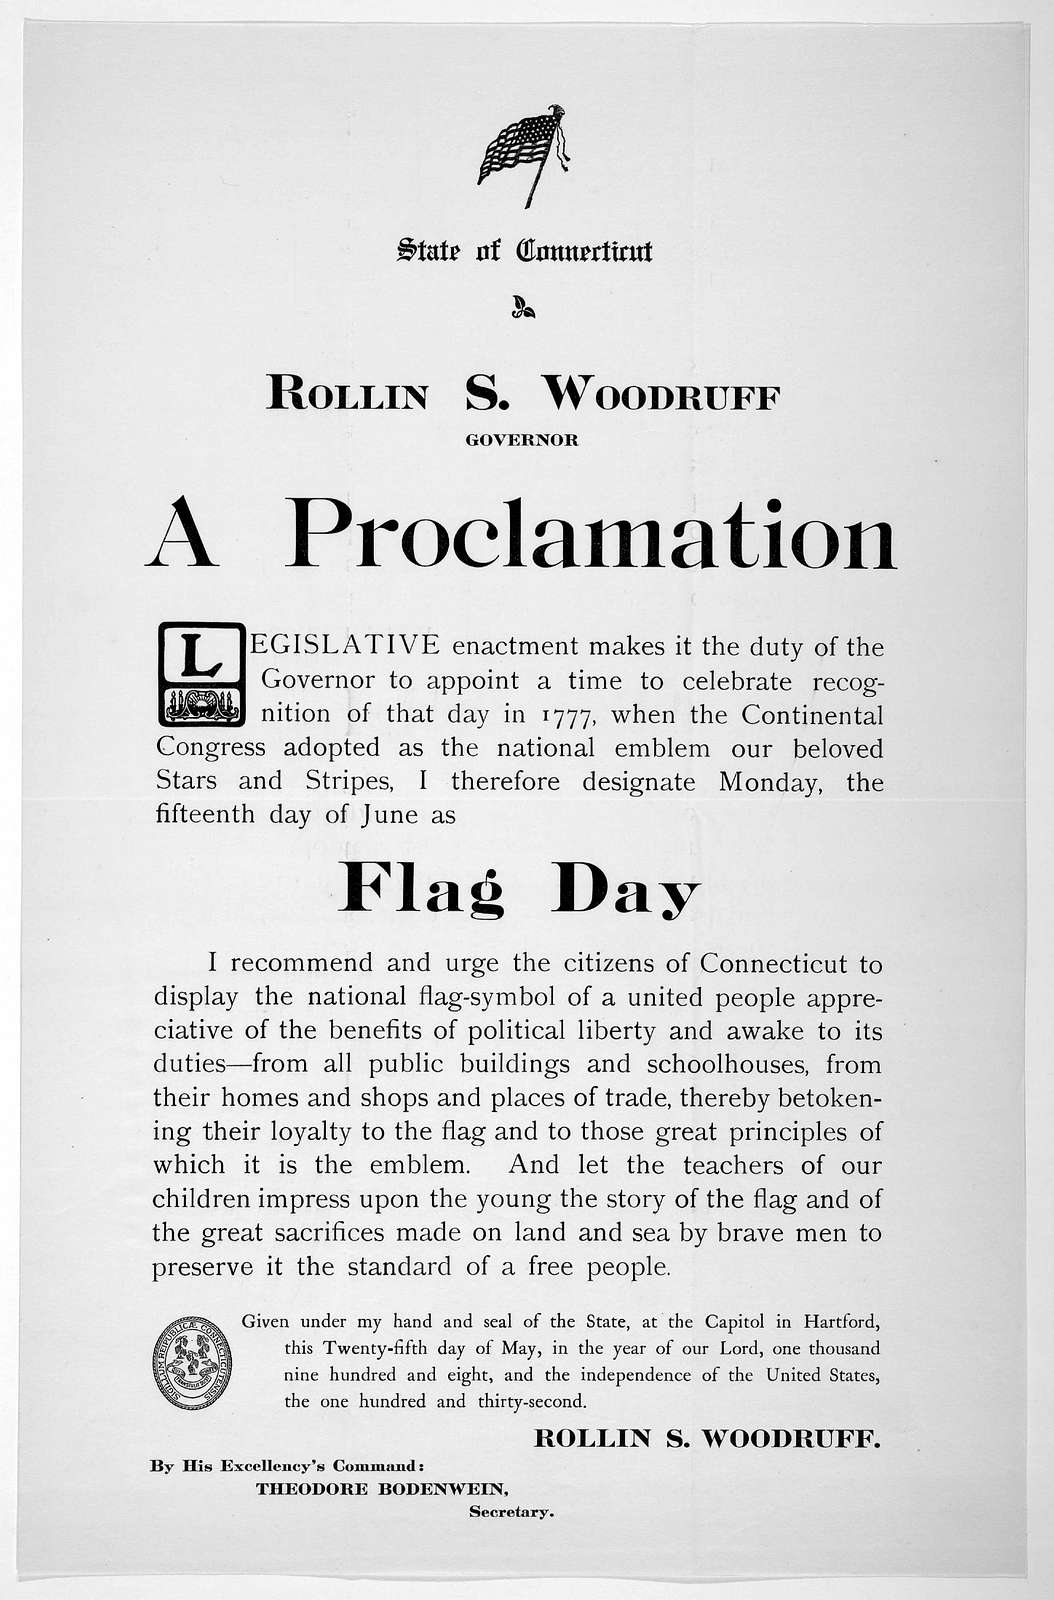 State of Connecticut. Rollin S. Woodruff Governor. A proclamation ... I therefore designate Monday, the fifteenth day of June as flag day ... Given under my hand ... this twenty-fifth day of May, in the year of our Lord, one thousand nine hundre